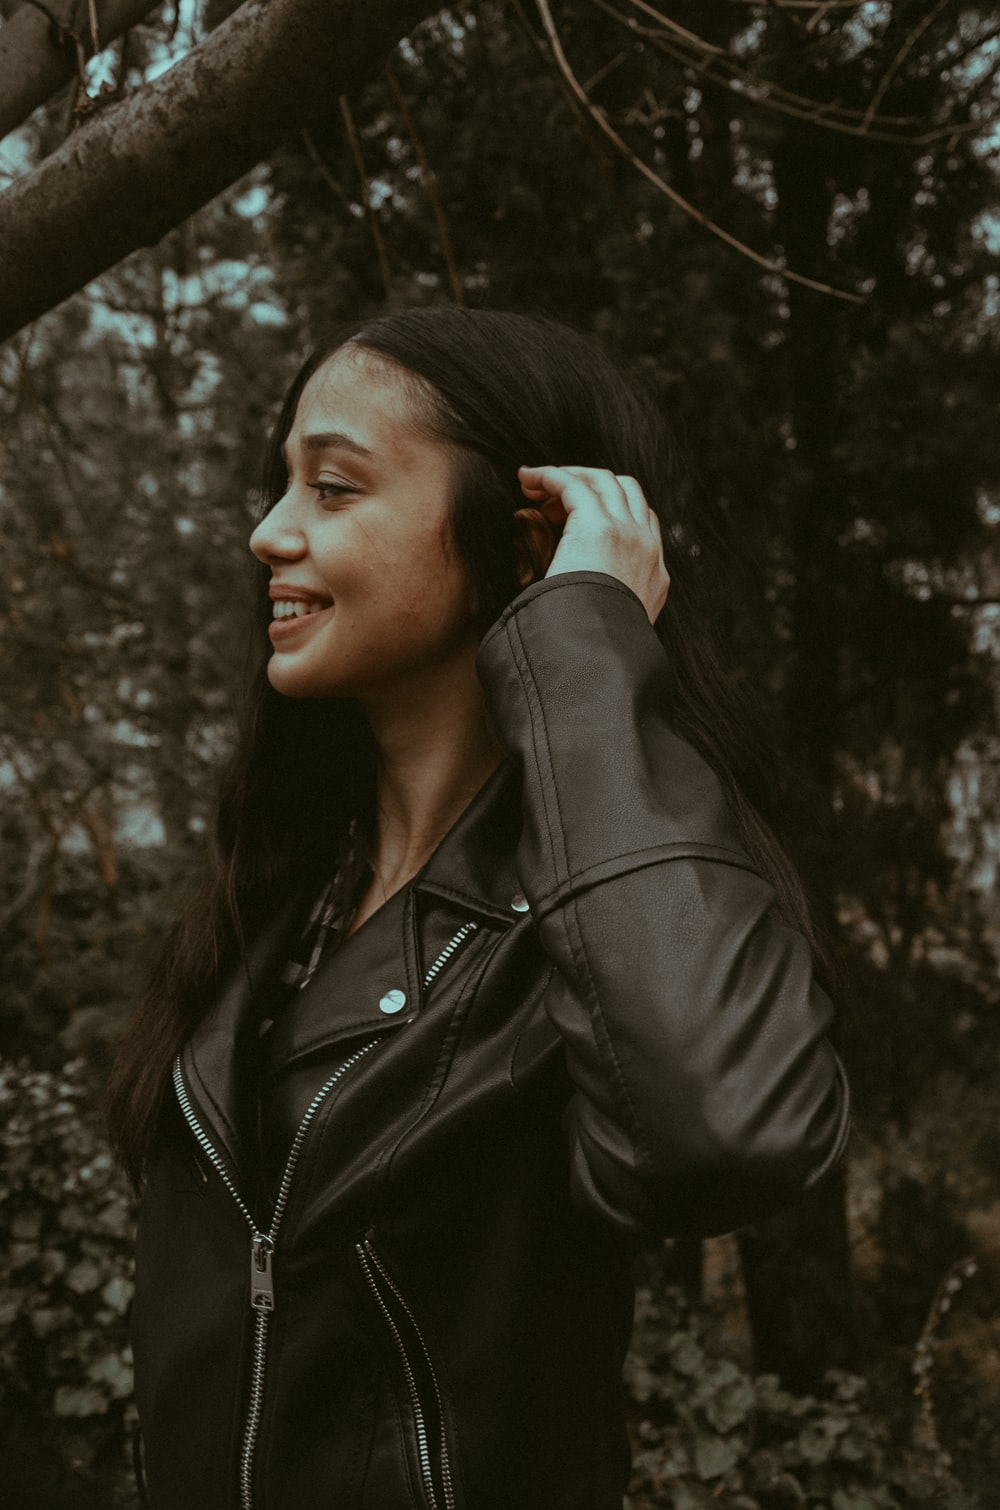 woman in black leather jacket standing near trees during daytime